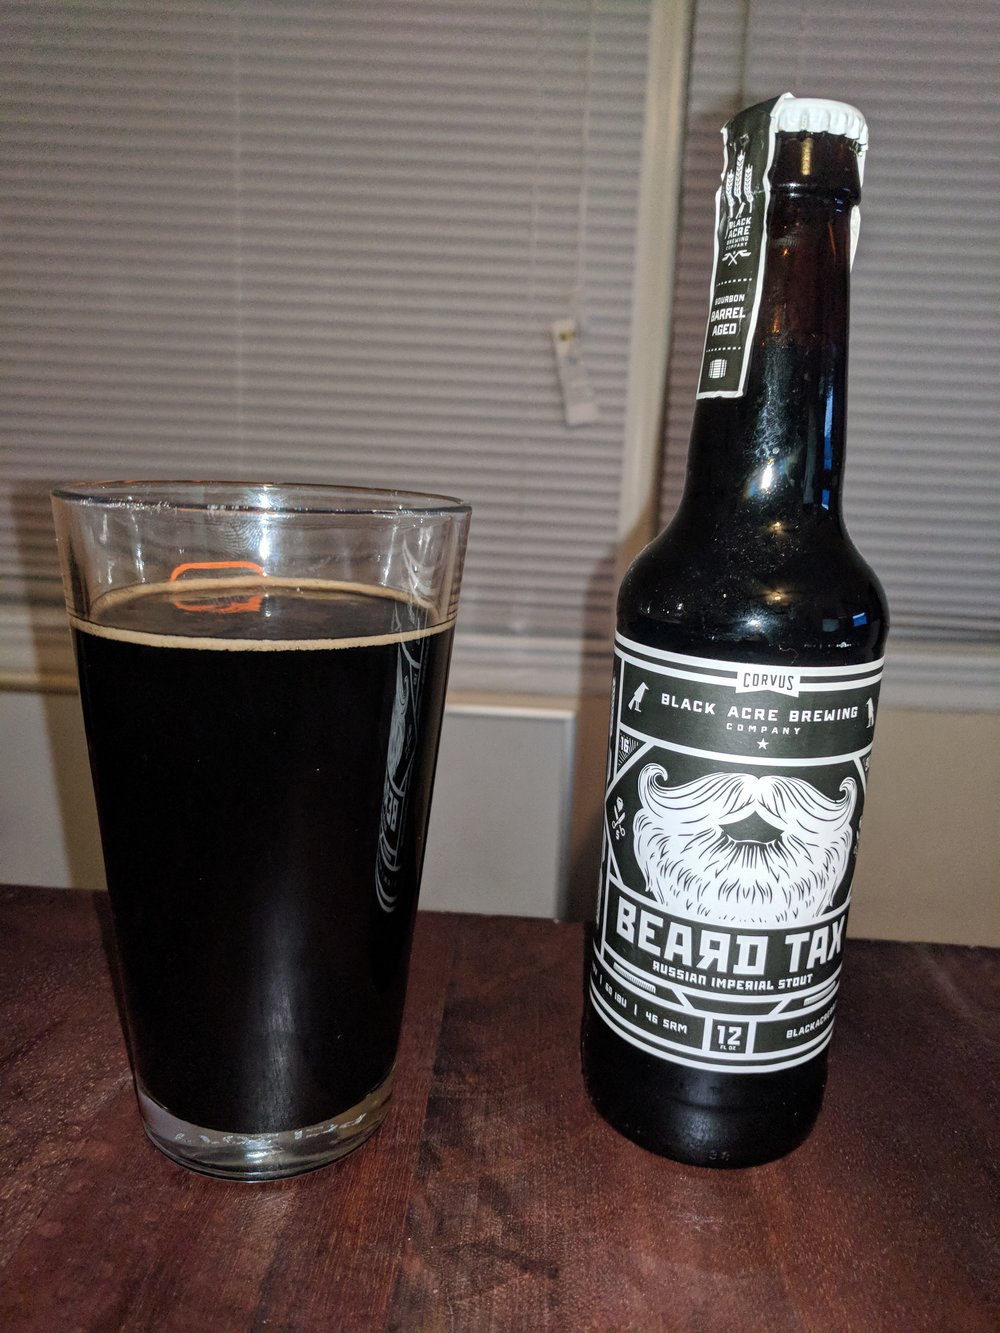 Black Acre Beard Tax - We tasted Beard Tax by the Black Acre Brewing on Episode 18.  It is a heavy Russian Imperial Stout.  While it is not an exact replica of the iconic Old Rasputin, this is a fantastic example of the style.  The dark malt really darkens this beer and provides the heavy mouth feel.  The after taste is present, but conversely is quite pleasant.  Very chocolaty and bitterness to accompany that.  This has less hop bitterness than sometimes comes through in a Russian Imperial Stout.  Joel personally likes this better, as the chocolate bitterness is better.  Scott actually really liked this beer, surprisingly, so we have been growing his pallet!  Nick thought this was pretty good, but Dylan thought it was not bad.